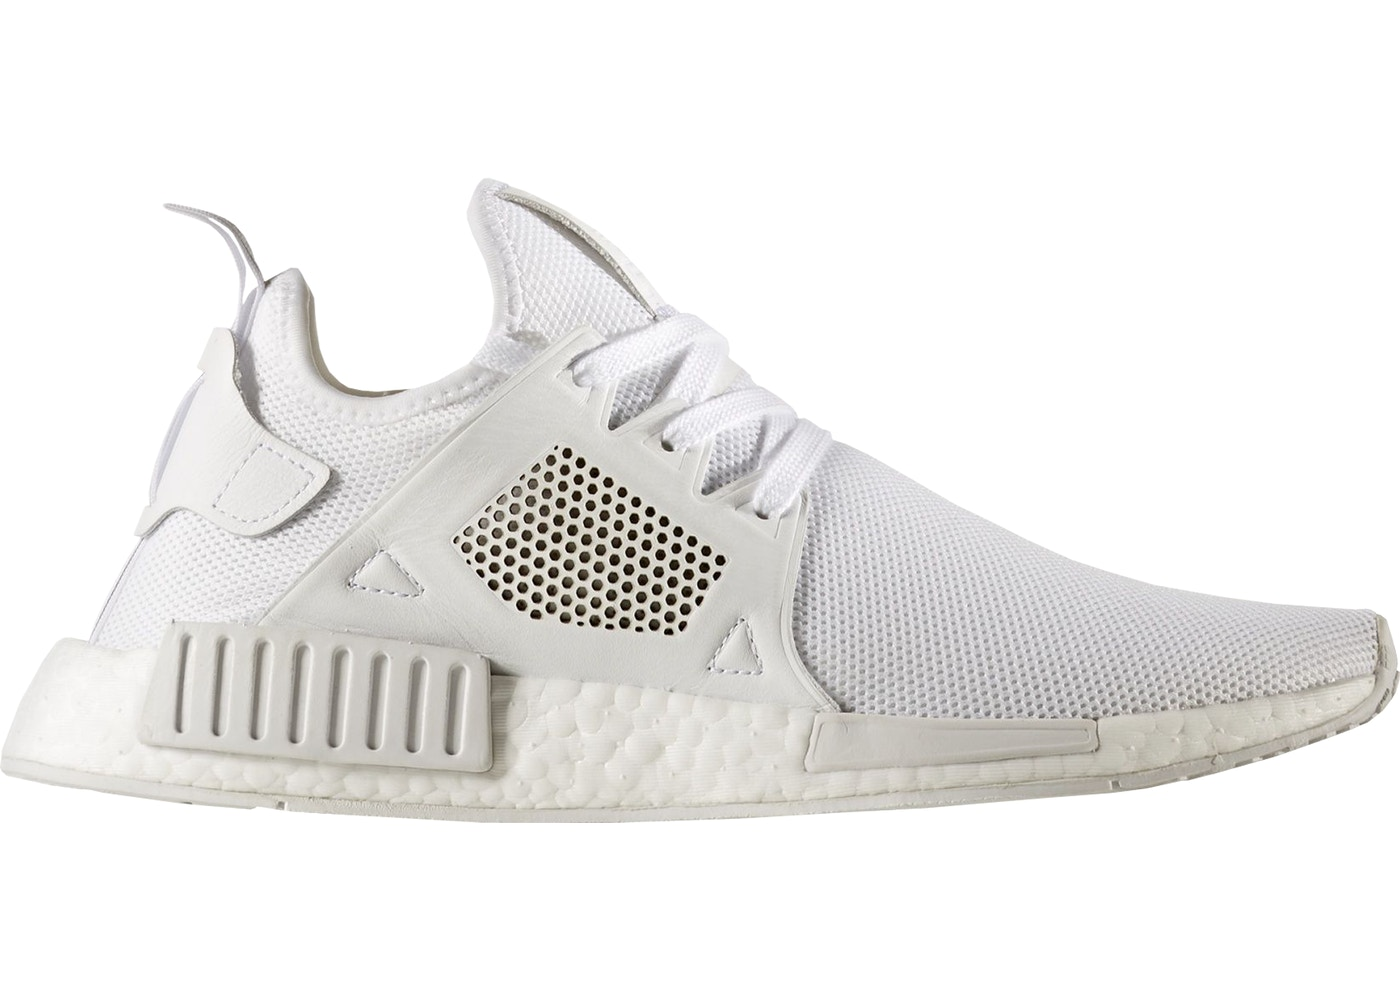 new arrivals c9cd8 179dc Adidas NMD XR1 Triple White (2017)